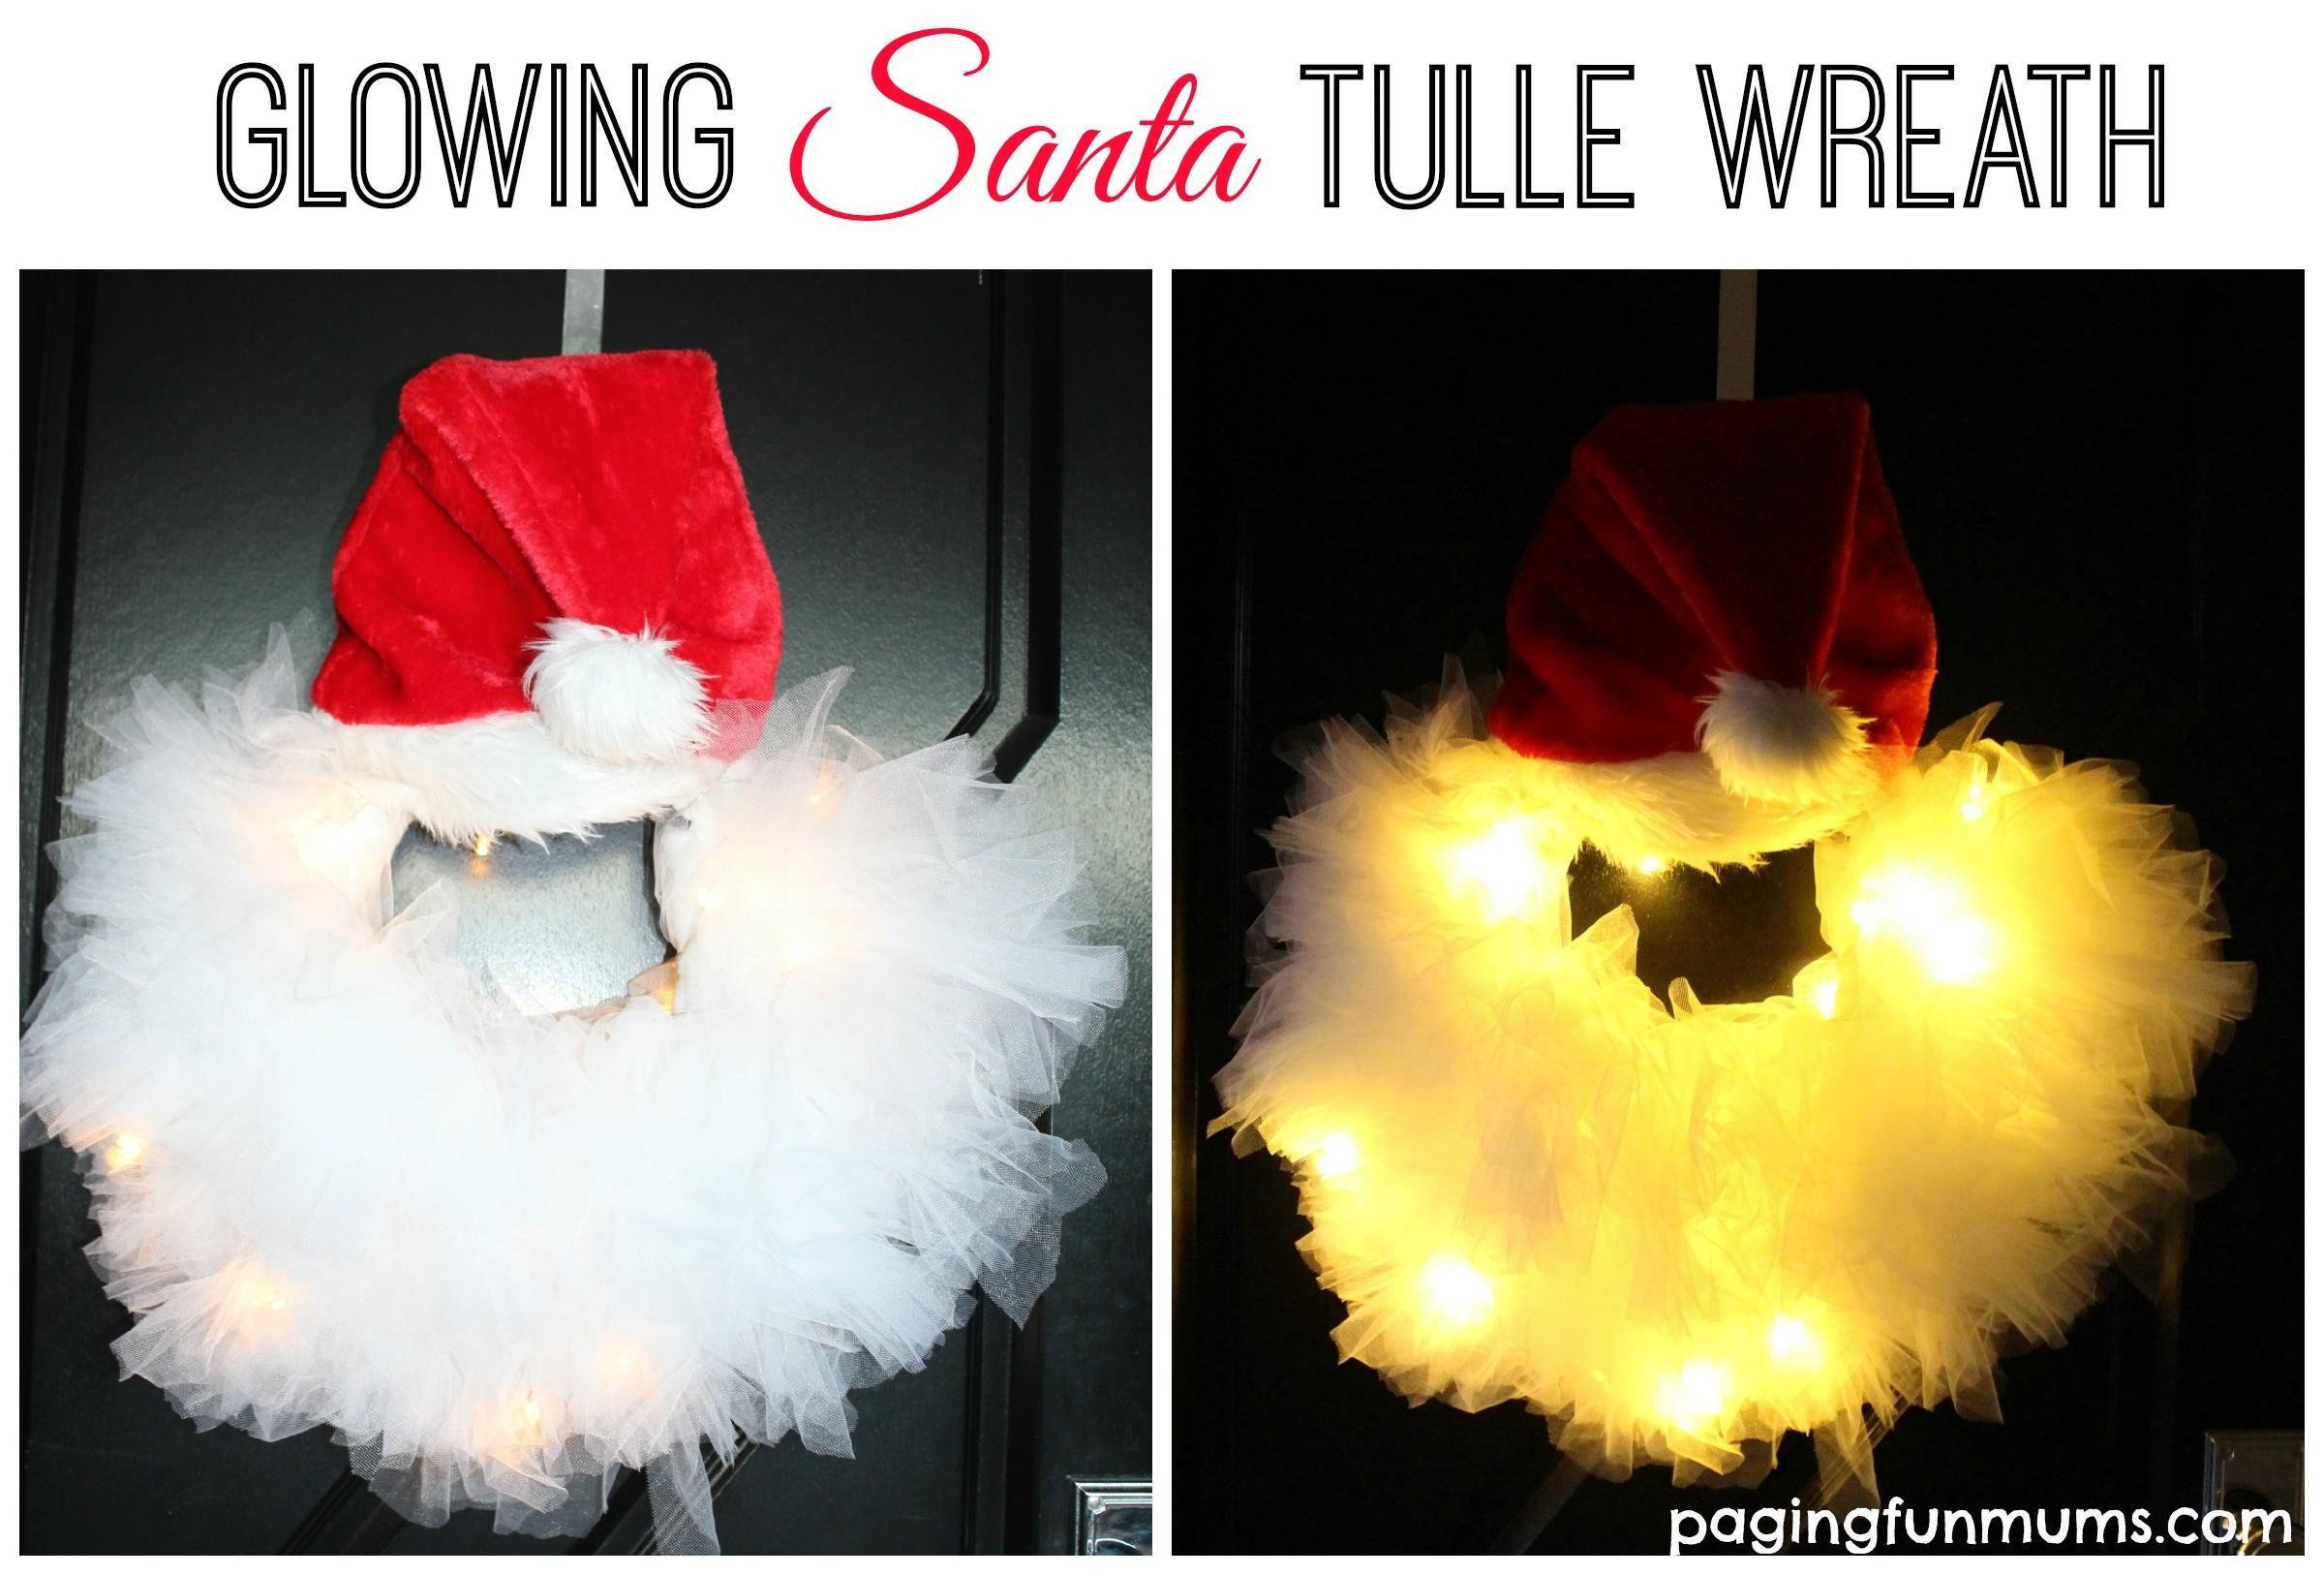 Glowing Santa Tulle Wreath